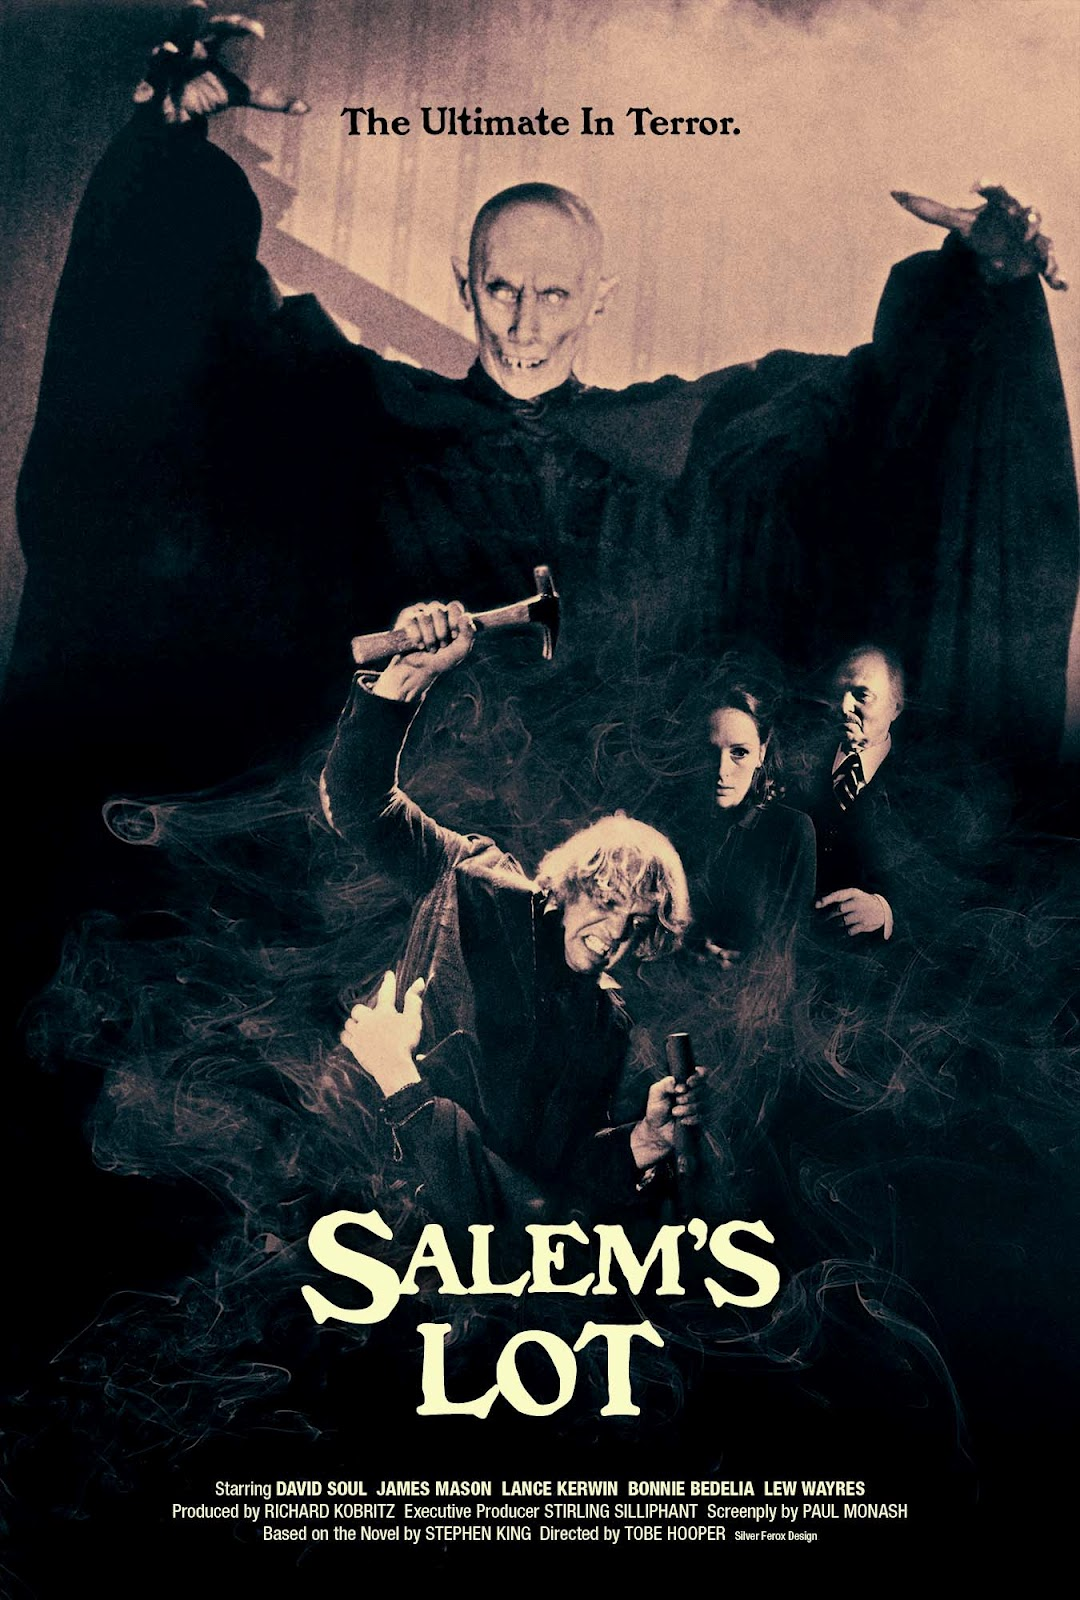 Happyotter: SALEM'S LOT (1979)